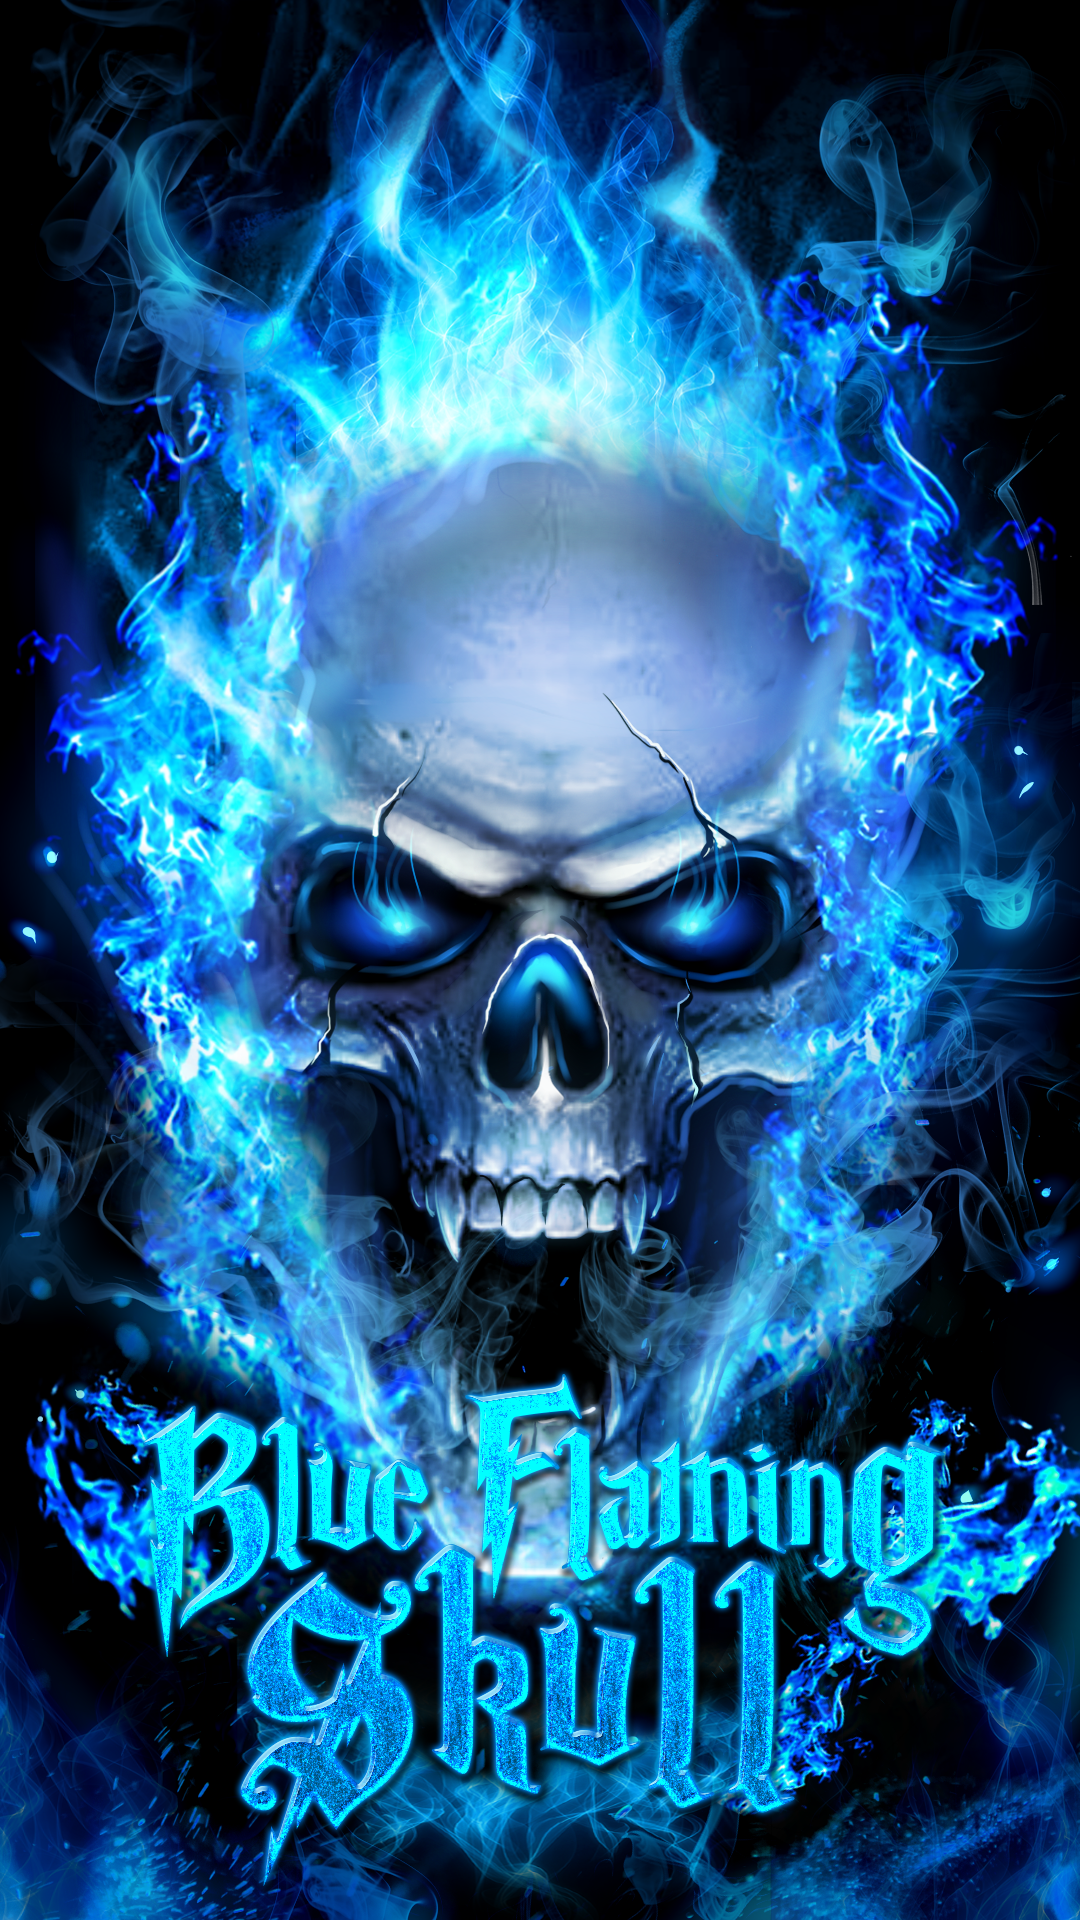 Blue flaming skull live wallpaper! Skull wallpaper